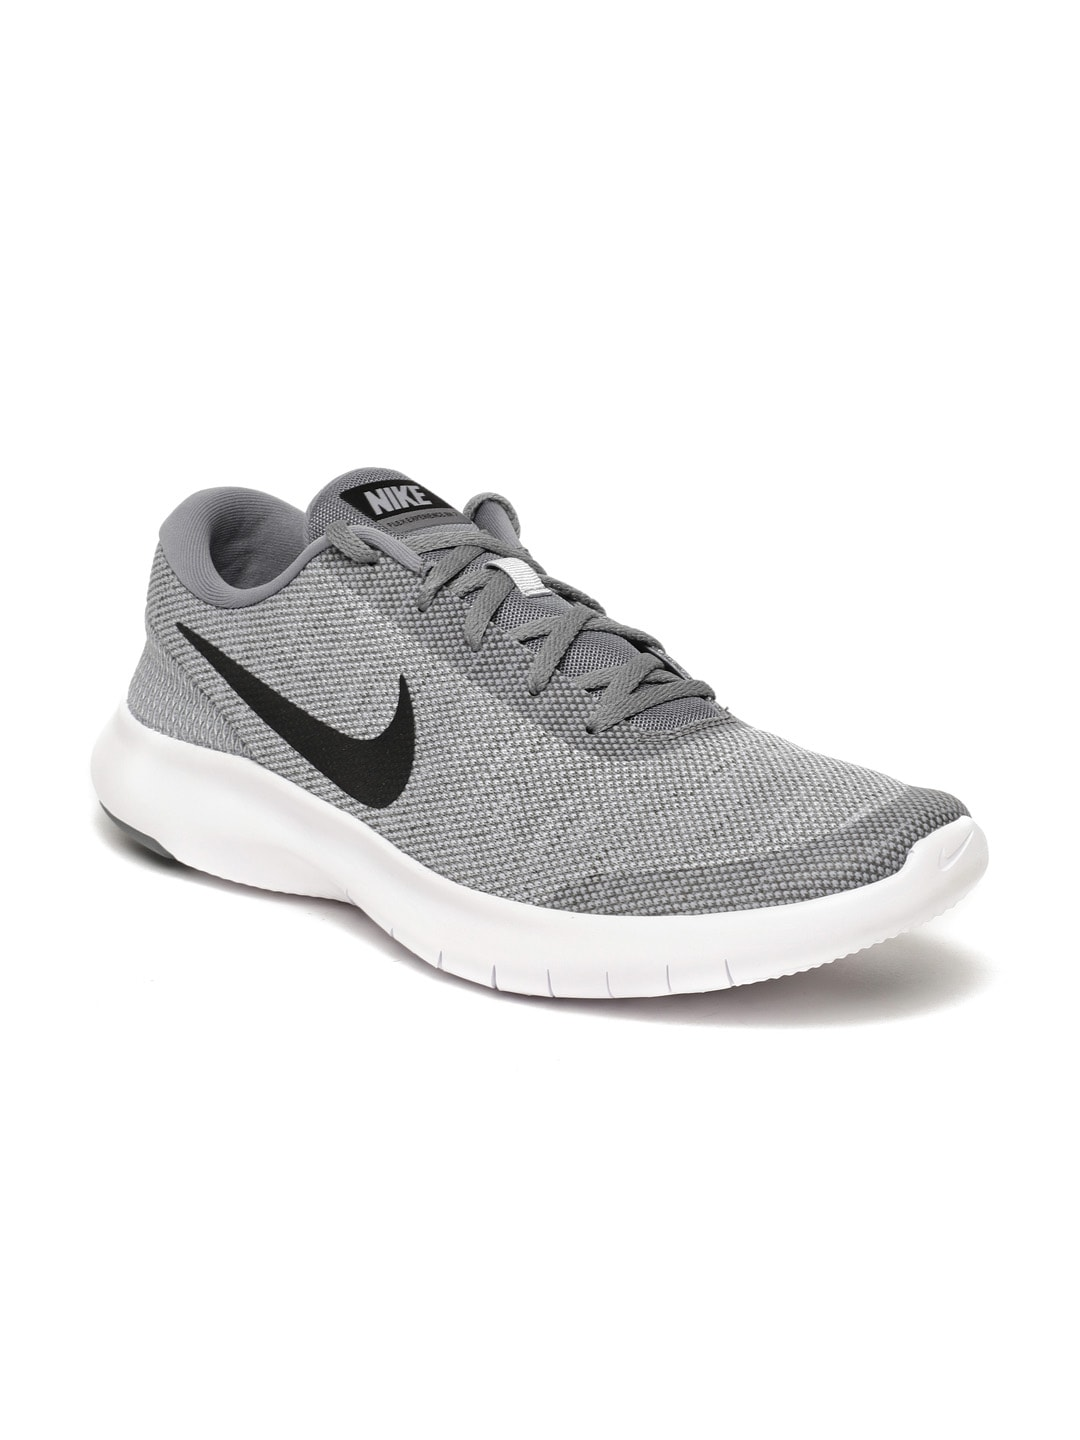 817fa151fe021 Nike Running Shoes Id - Buy Nike Running Shoes Id online in India